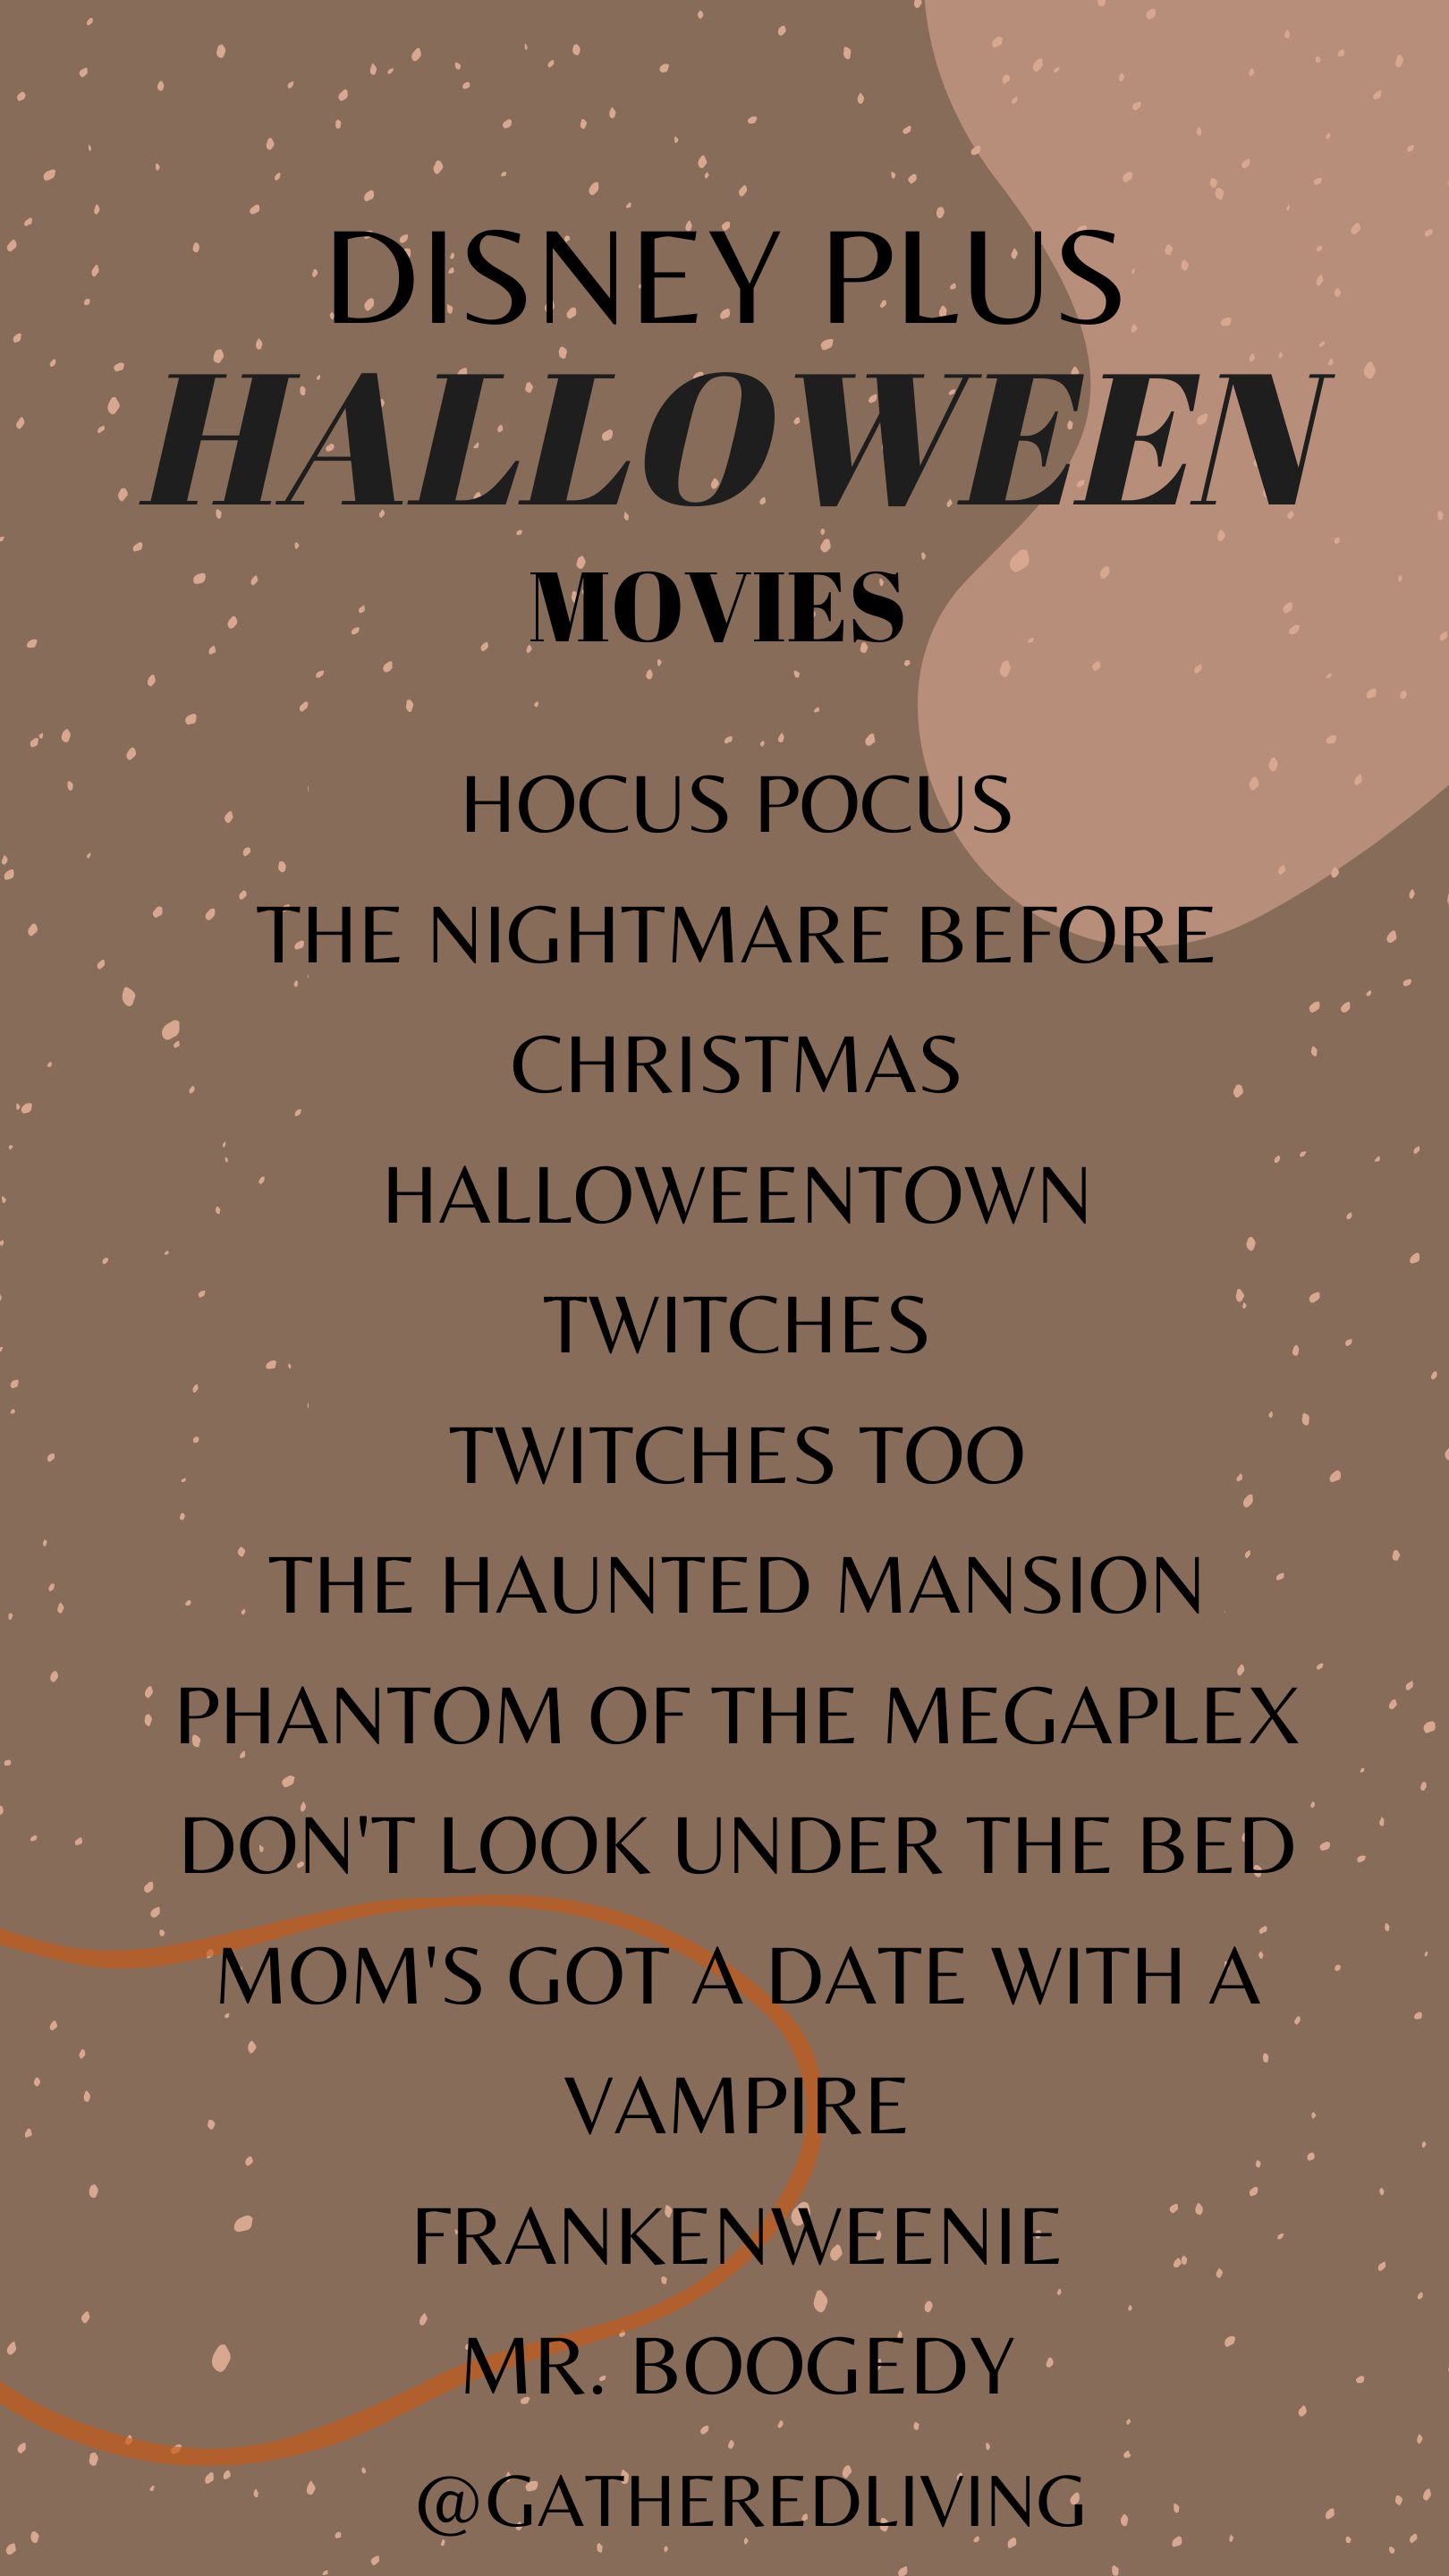 Disney Plus Halloween Tv Movies Roundup Gathered Living Claus, don't think ill of my plan. disney plus halloween tv movies